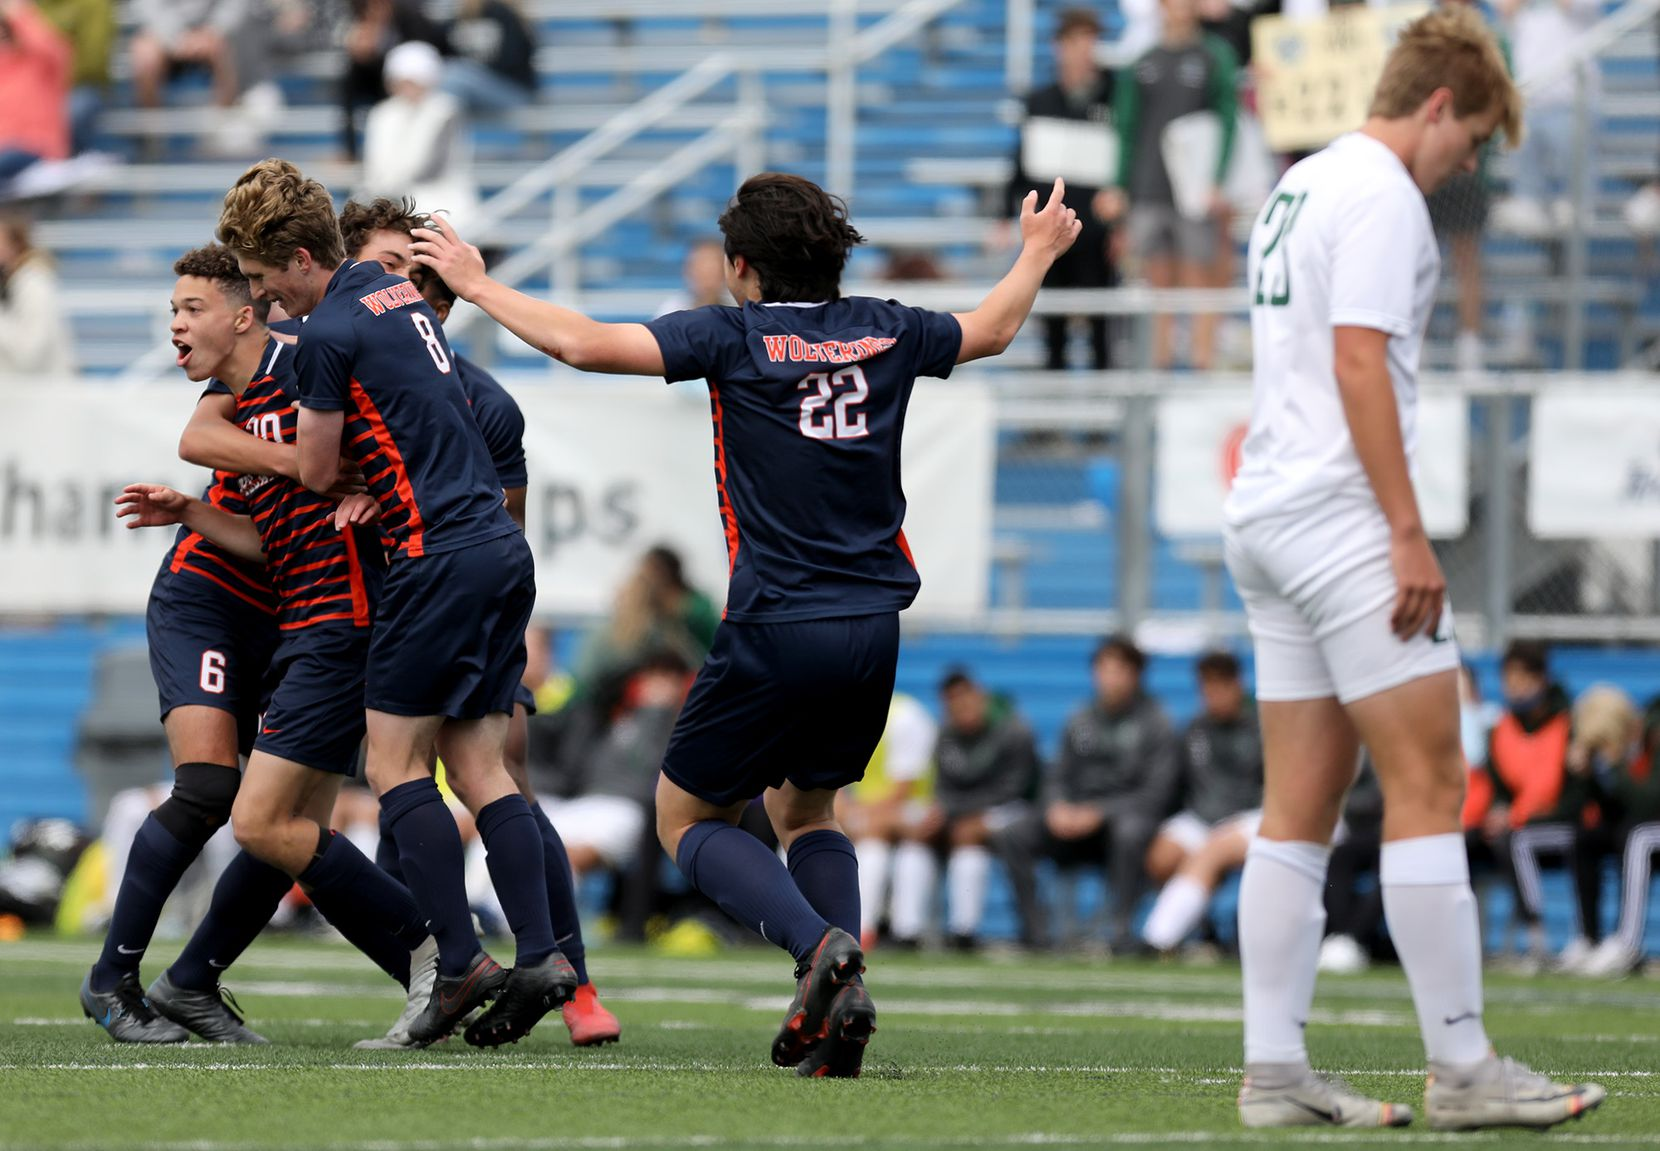 Frisco Wakeland's Micah Kelley (20) celebrates with teammates after scoring a goal against Humble Kingwood Park during their UIL 5A boys State championship soccer game at Birkelbach Field on April 17, 2021 in Georgetown, Texas.